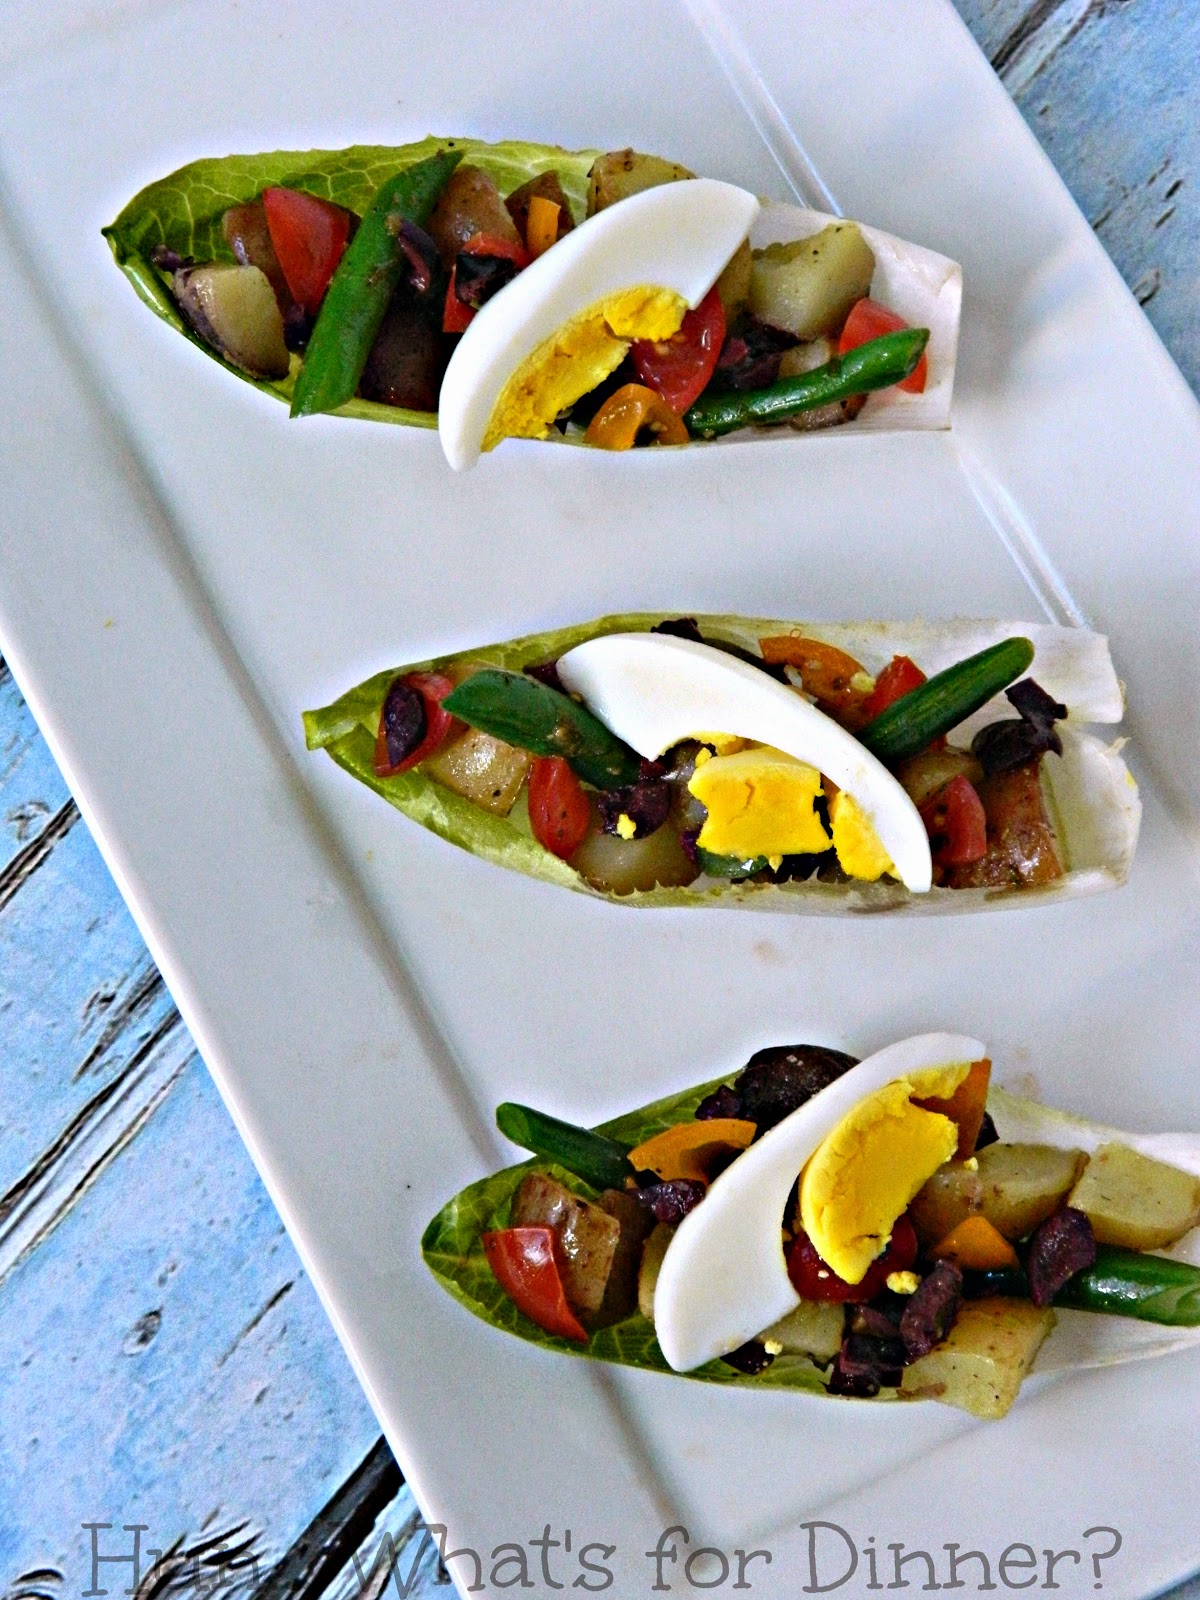 Salad Nicoise Bites using The Little Potato Company Creamer potatoes